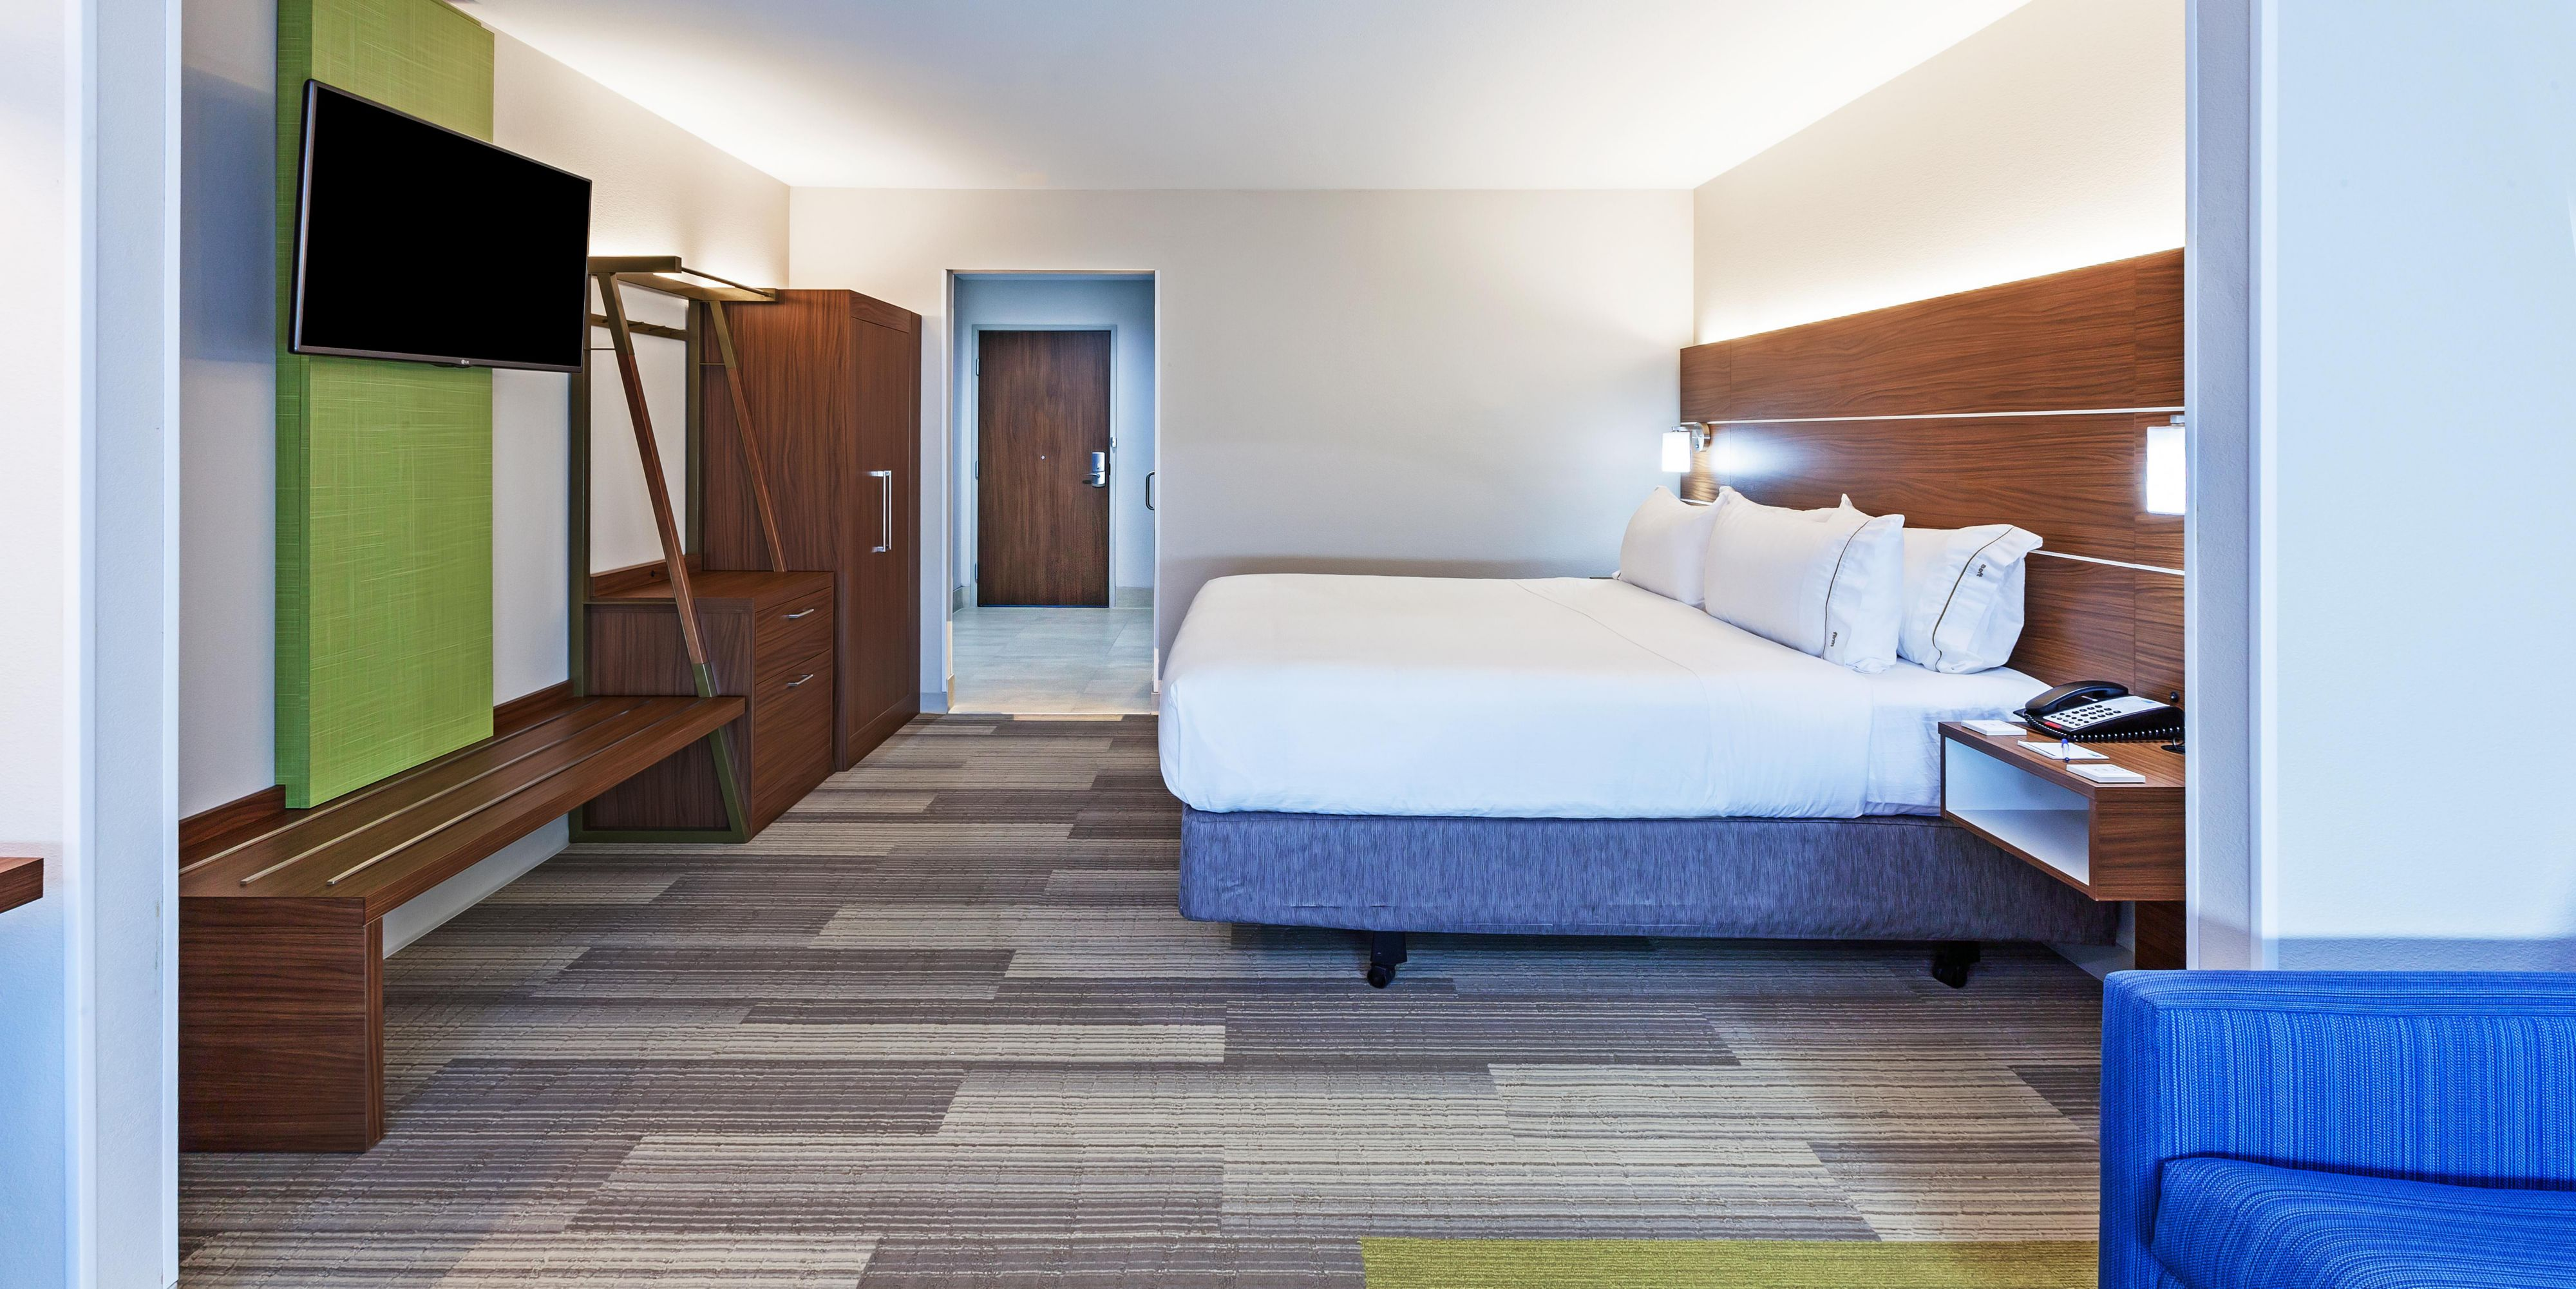 Holiday Inn Express & Suites Tulsa West - Sand Springs Hotel by IHG